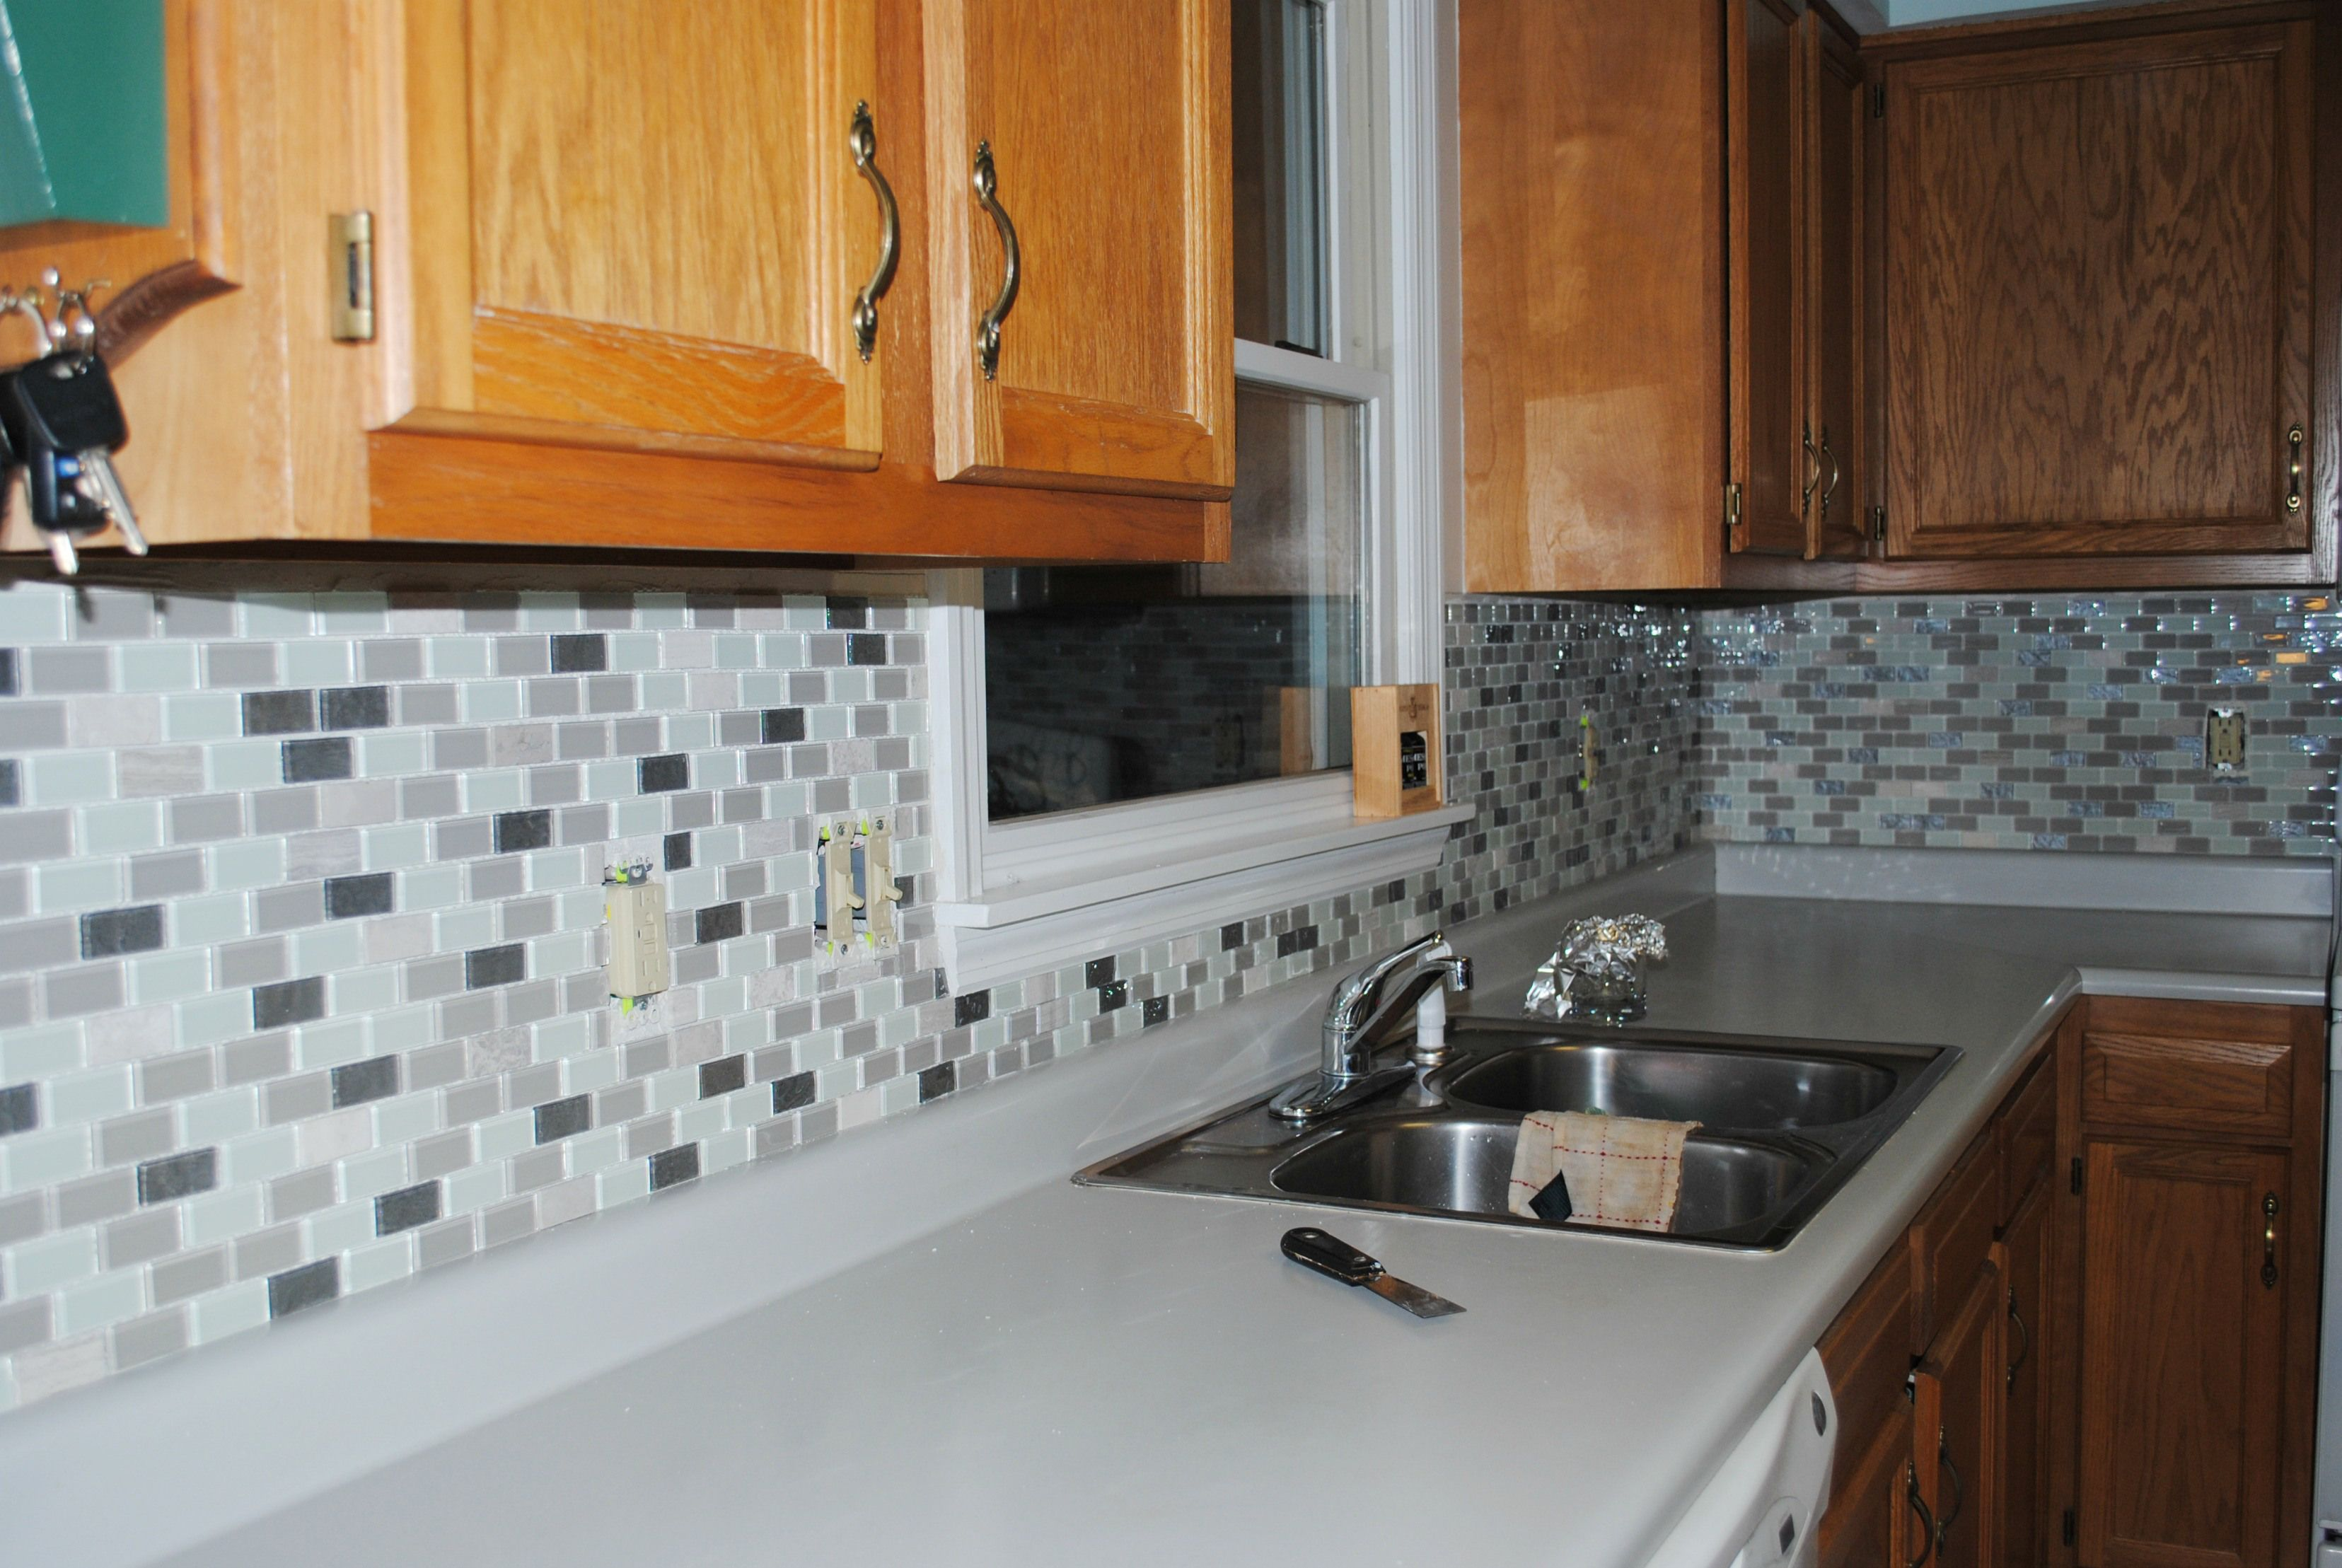 Groutless Backsplash Mounts Hidden